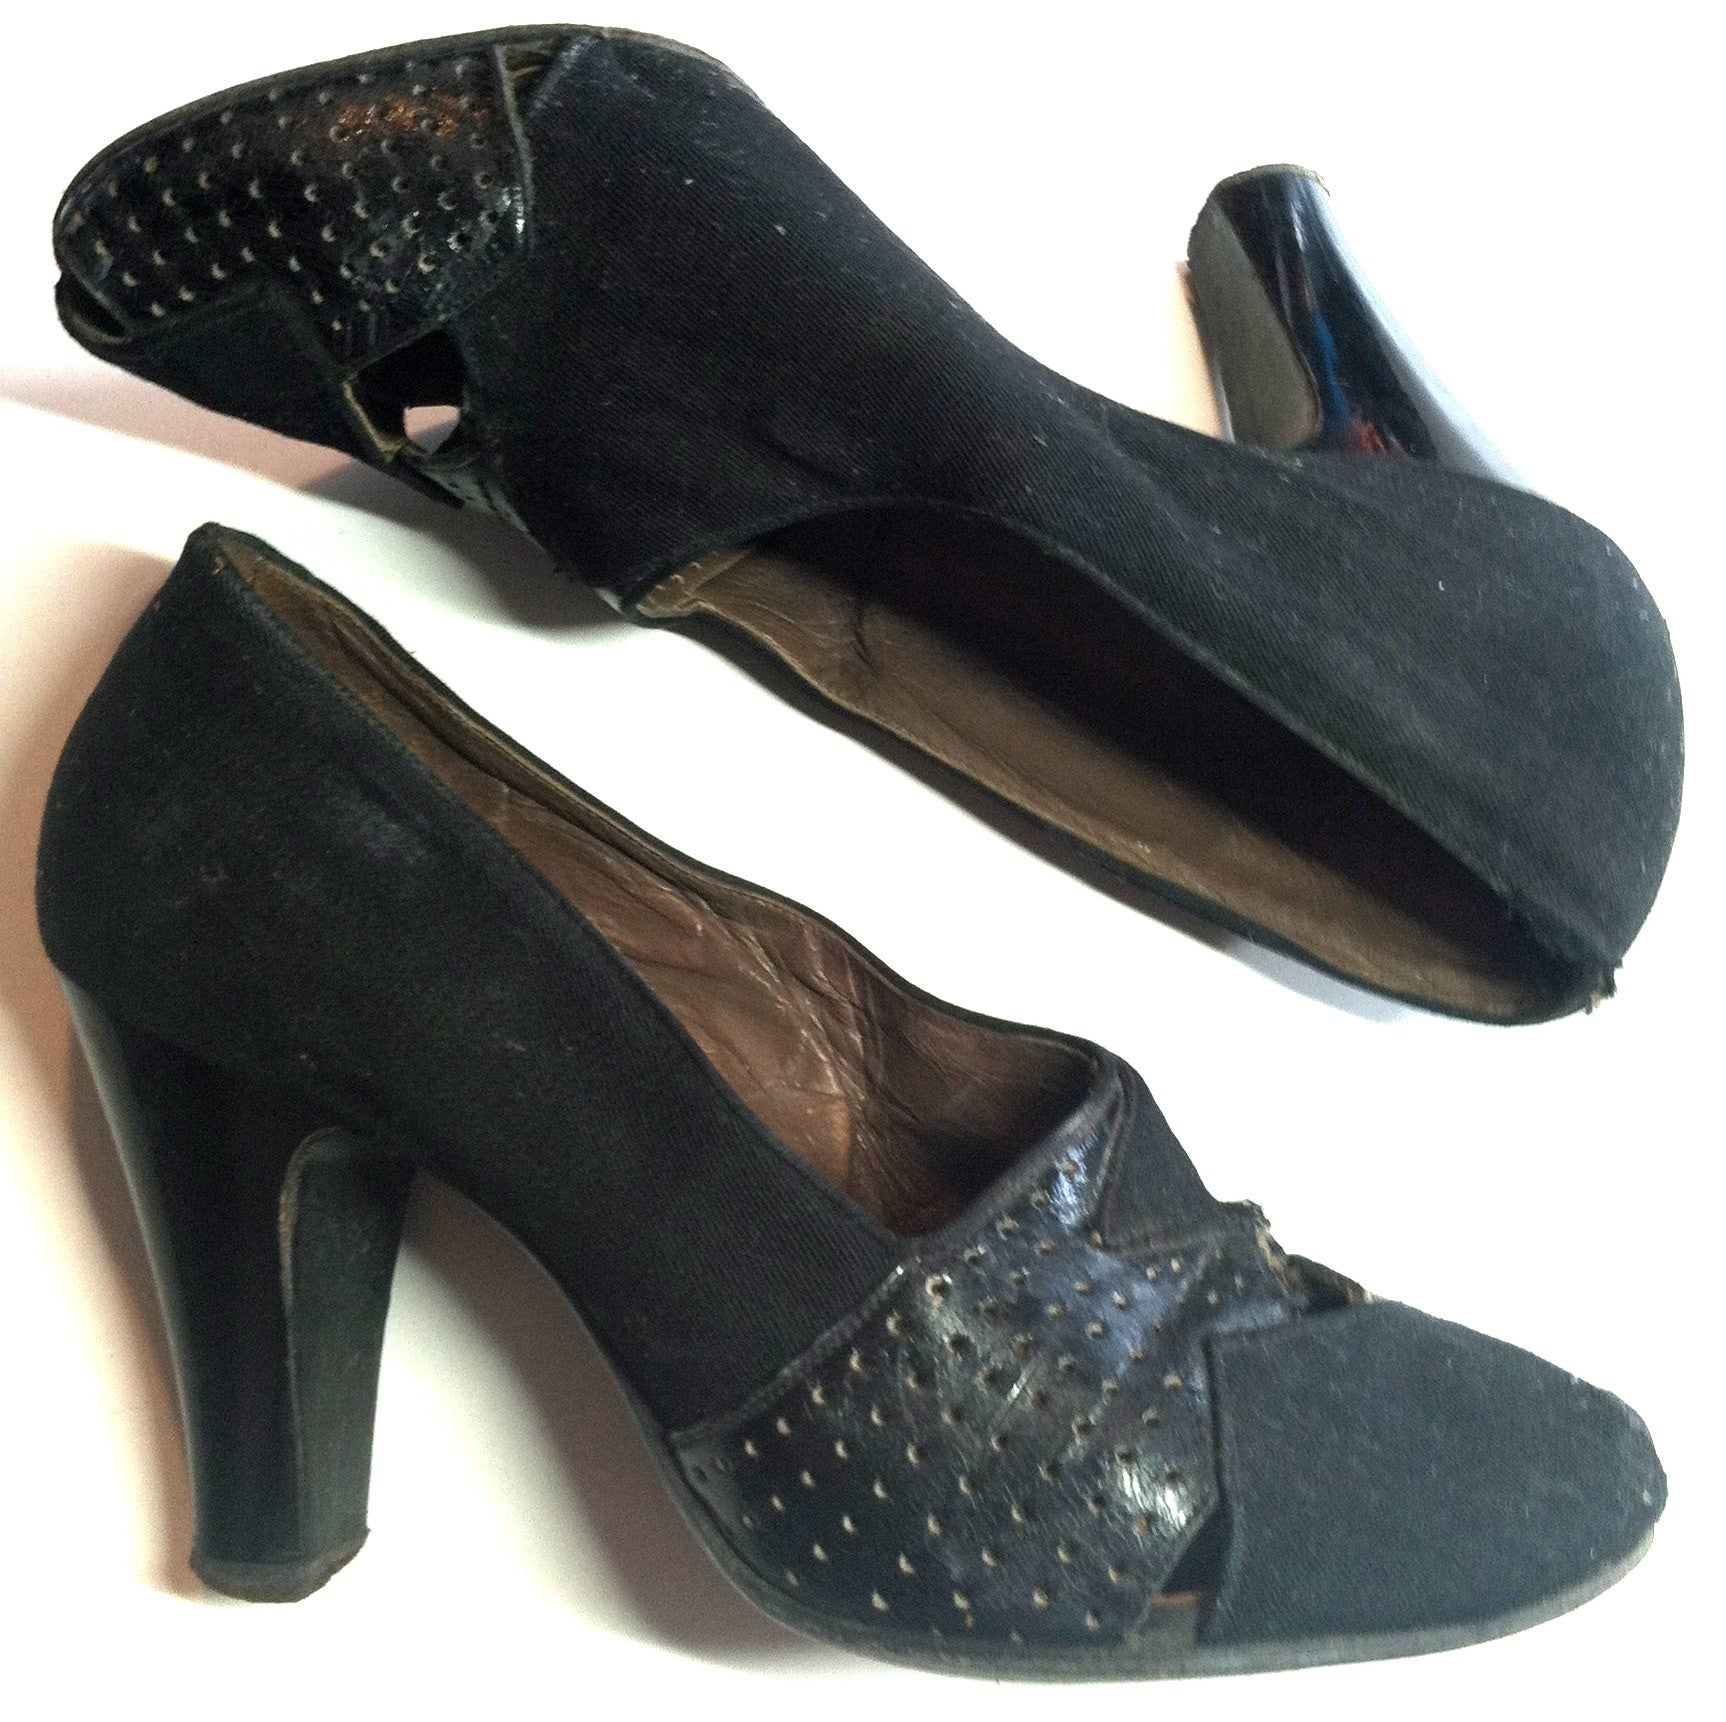 Peaks and Valleys Black Leather and Gabardine Shoes 4.5 circa 1940s Dorothea's Closet Vintage Shoes